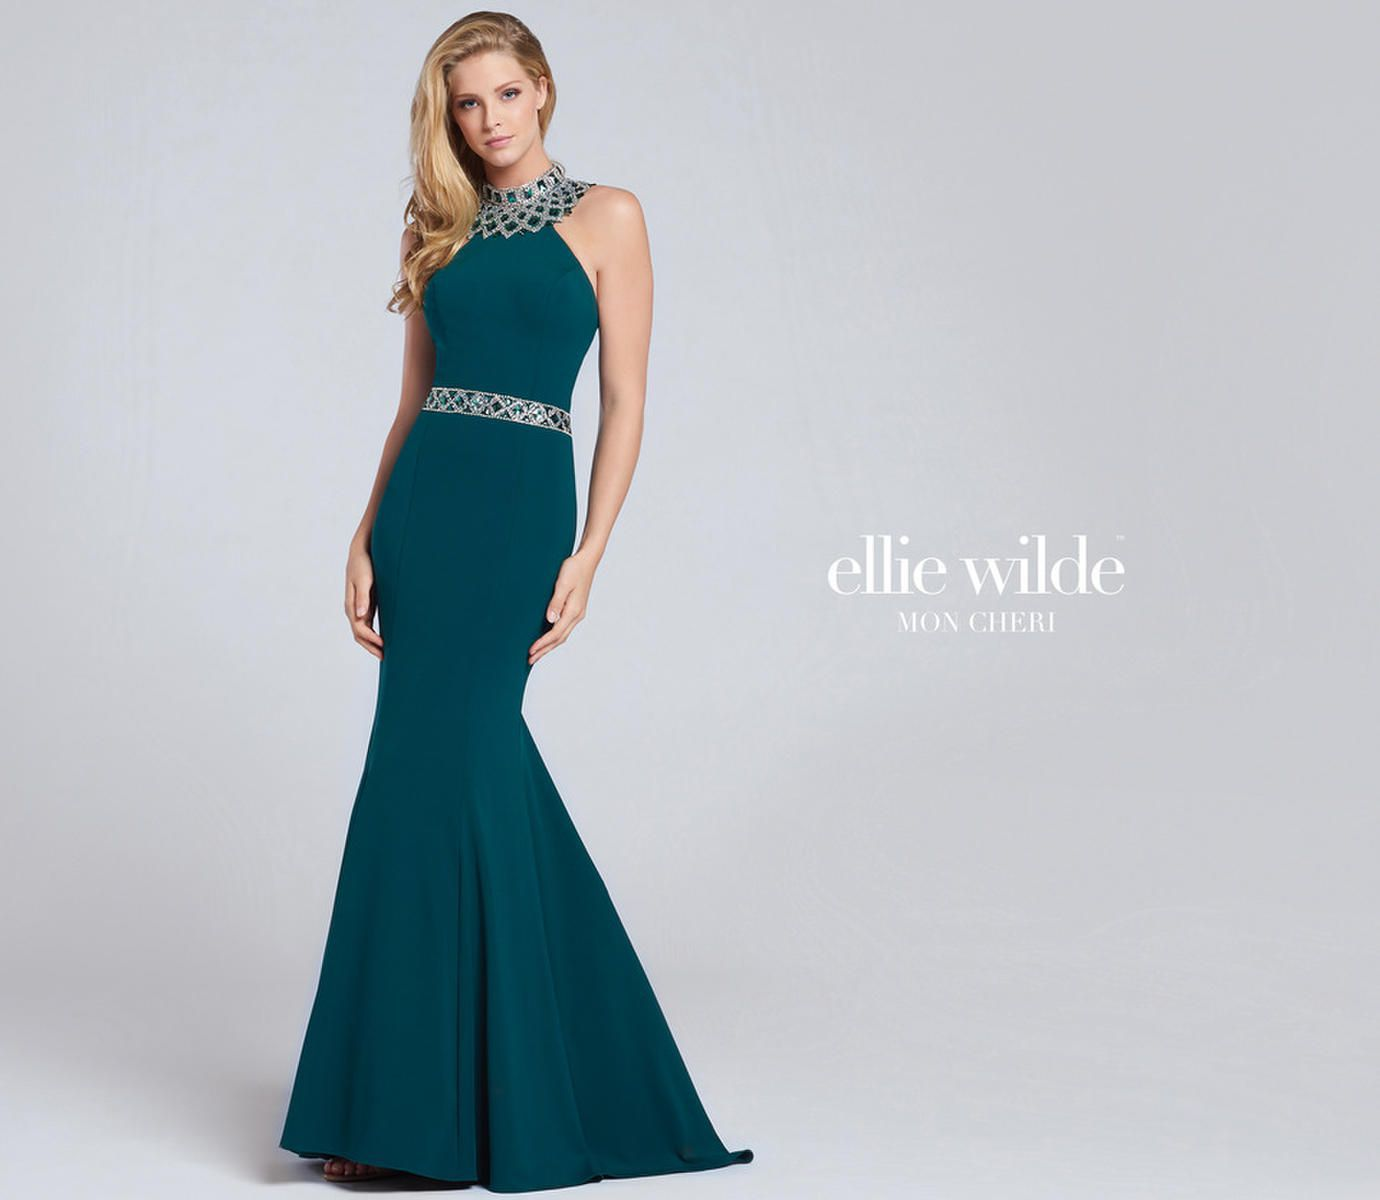 Style EW117082 Ellie Wilde Green Size 10 Pageant Halter Train Tall Height Mermaid Dress on Queenly